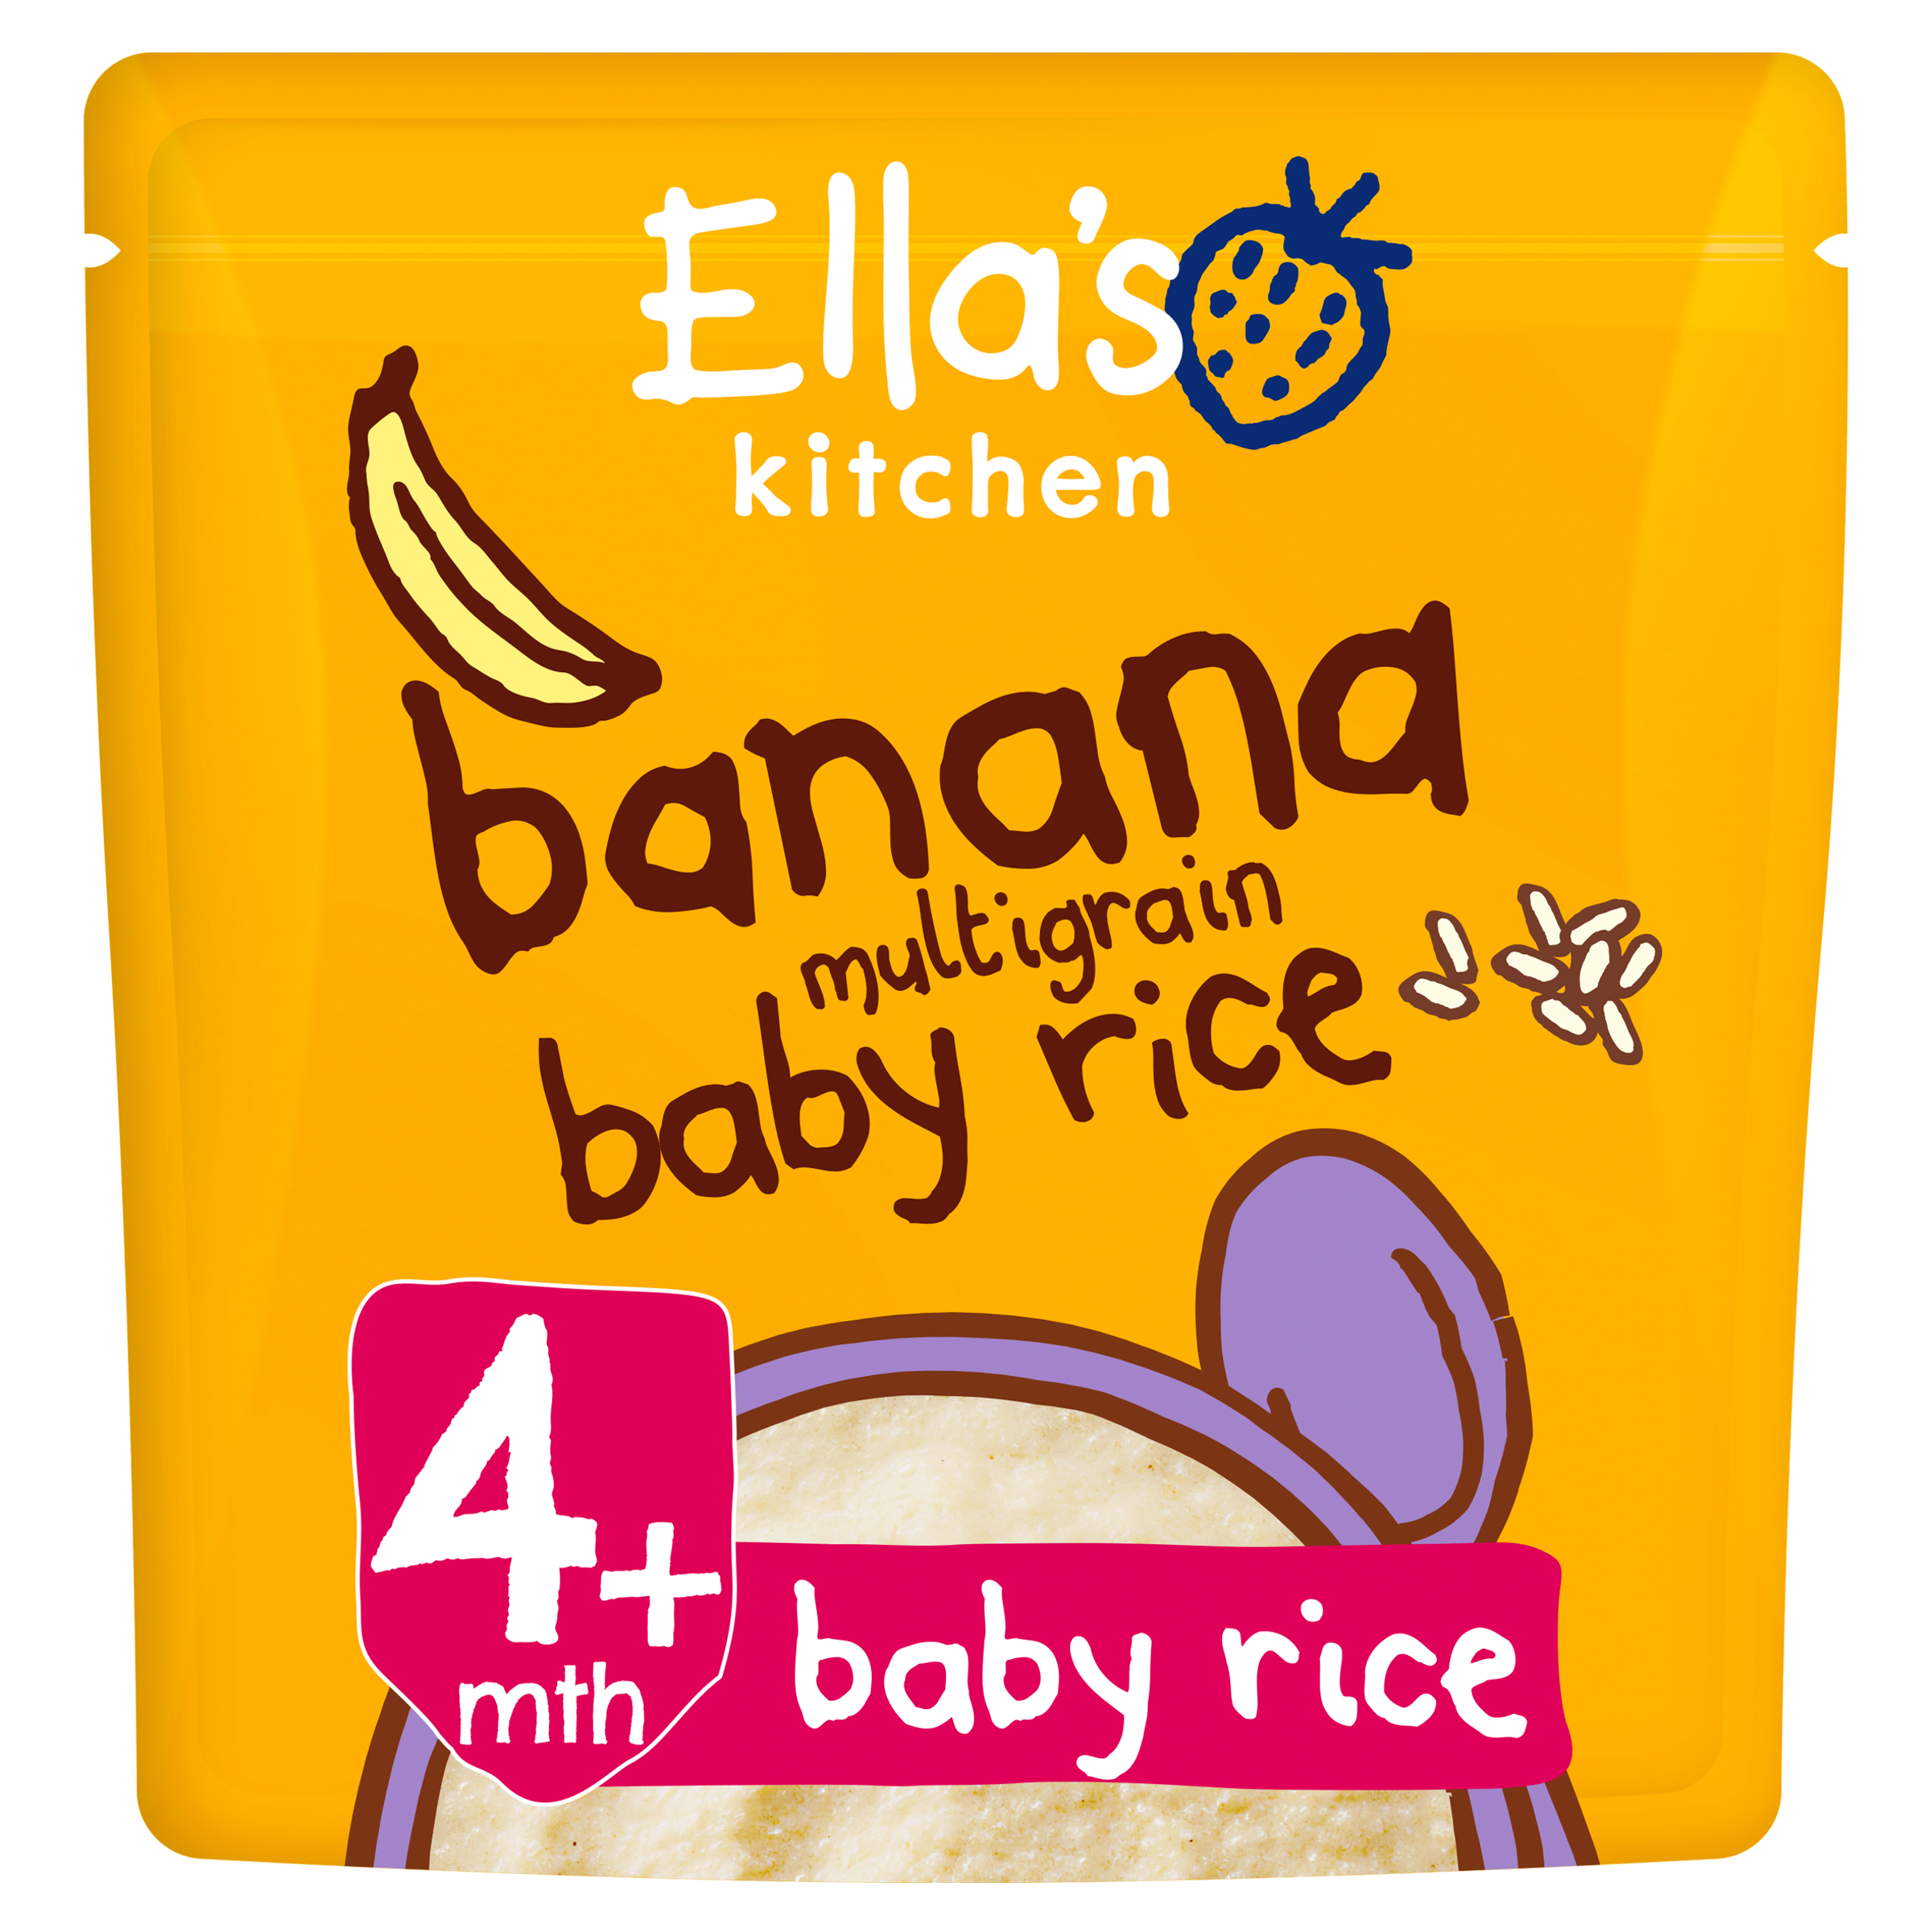 Ellas kitchen banana multigrain baby rice pouch front of pack O